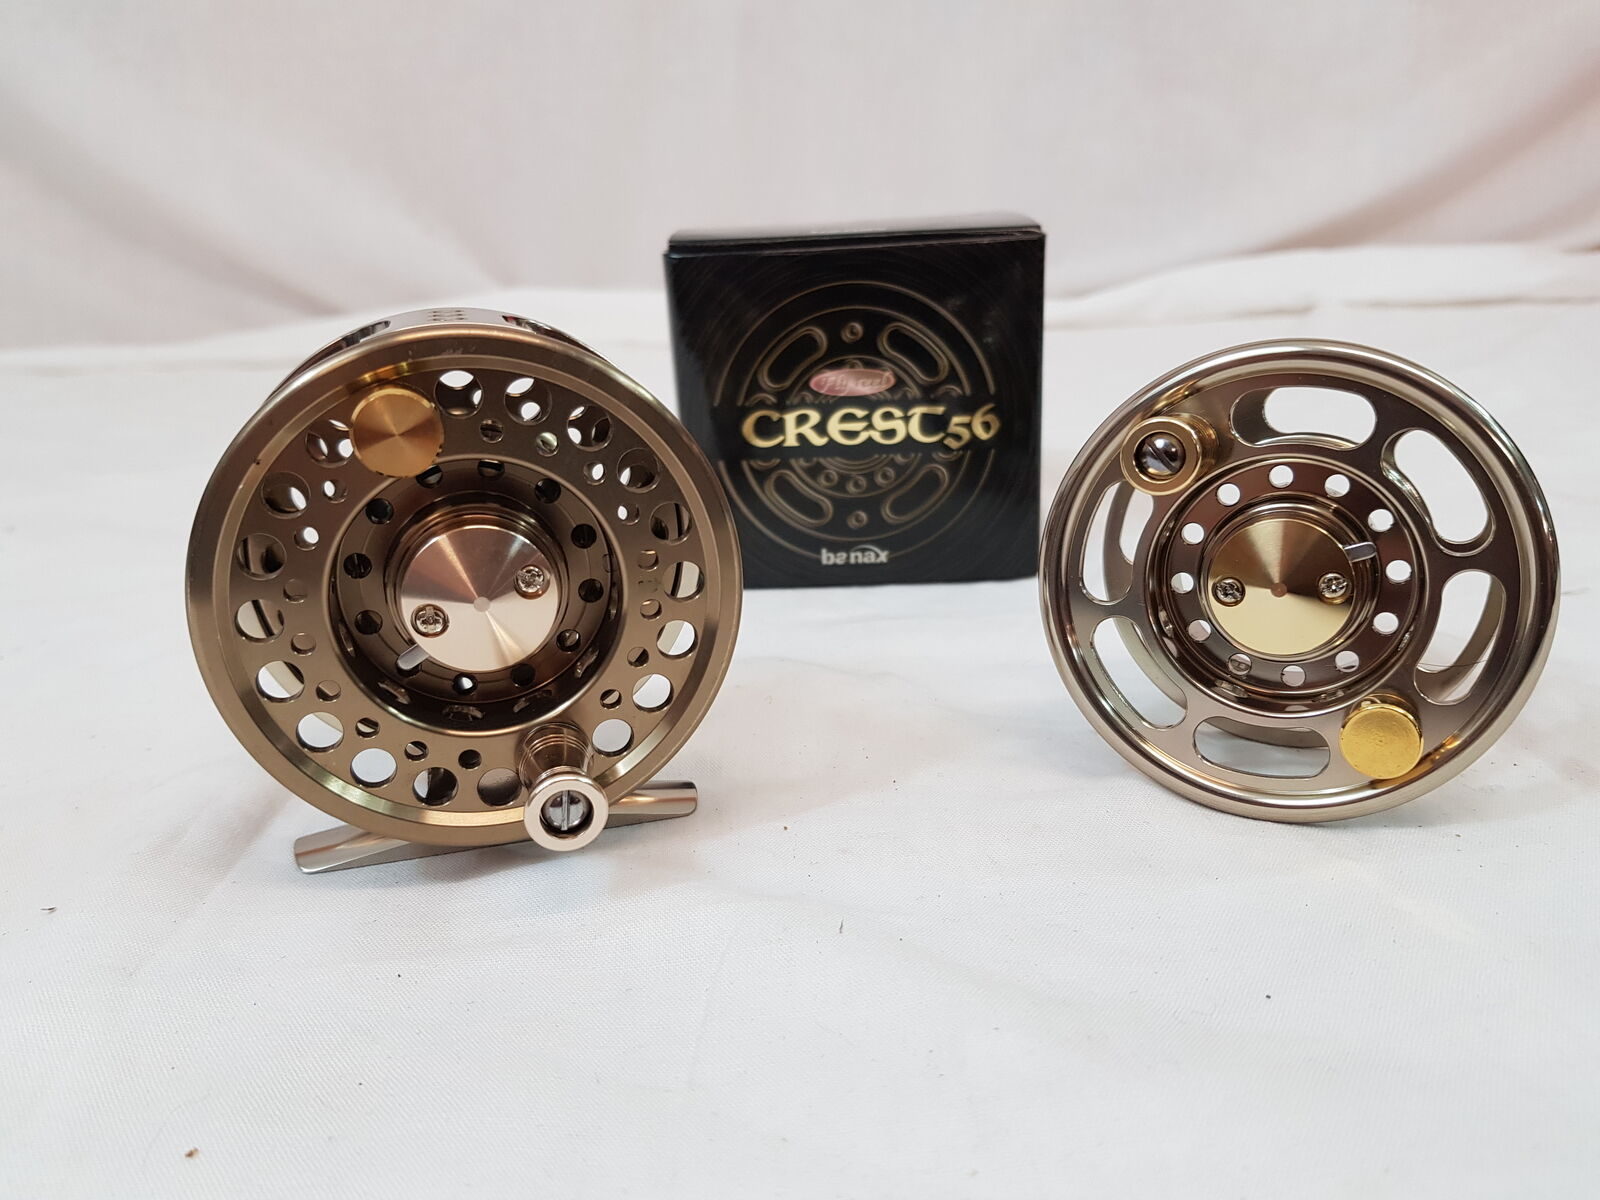 BANAX REEL CREST LARGE ARBOR FLY REEL BANAX AND SPARE SPOOL eb8dda